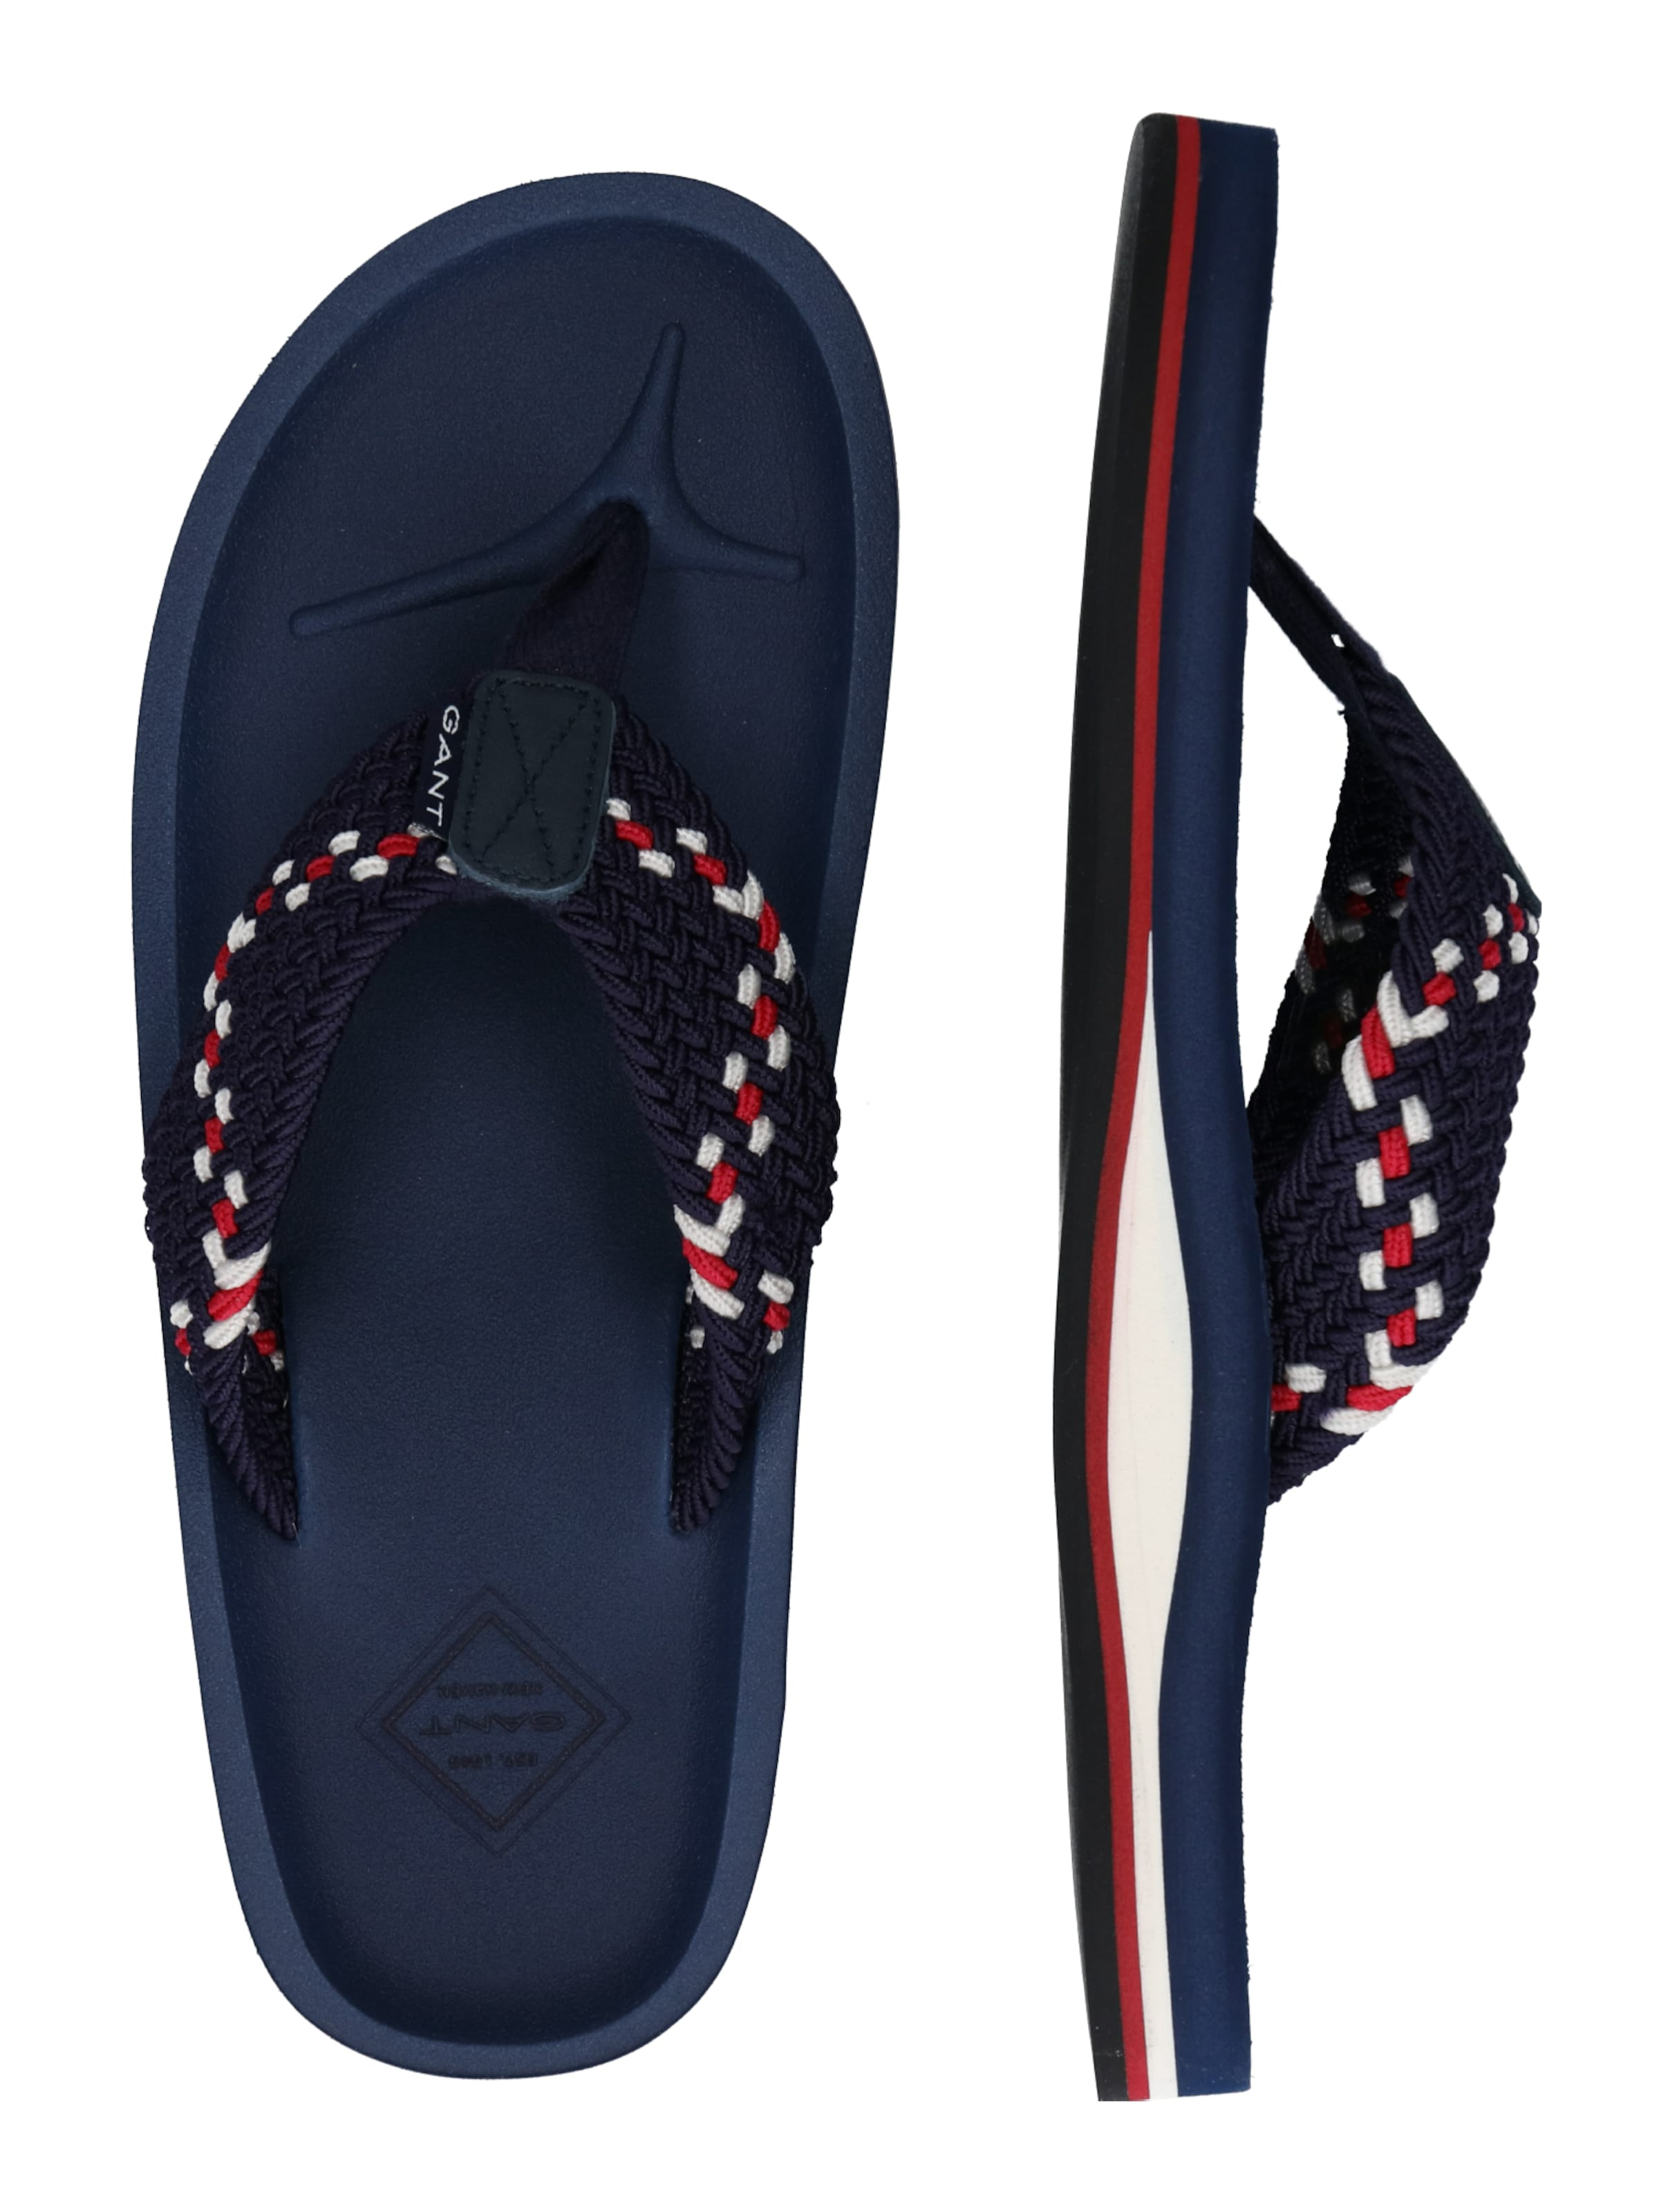 DunkelblauRot In Gant Weiß 'breeze' Slipper CQrsthd